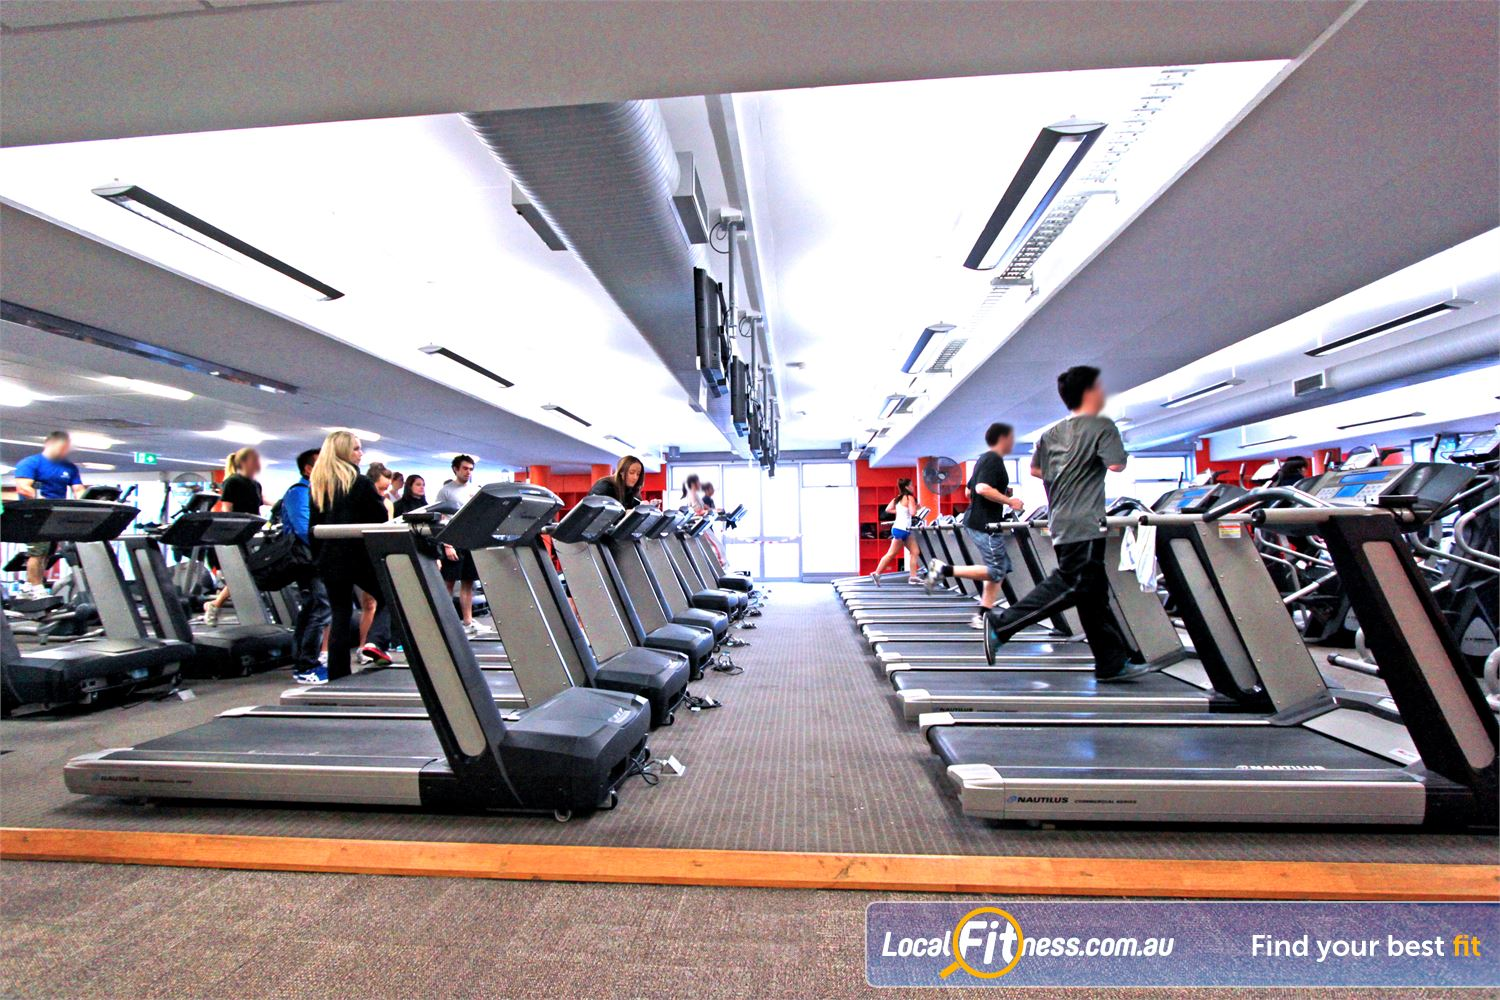 Macquarie University Sport & Aquatic Centre Near North Ryde Our Macquarie University gym provides a massive cardio theatre with more than 50 pieces.